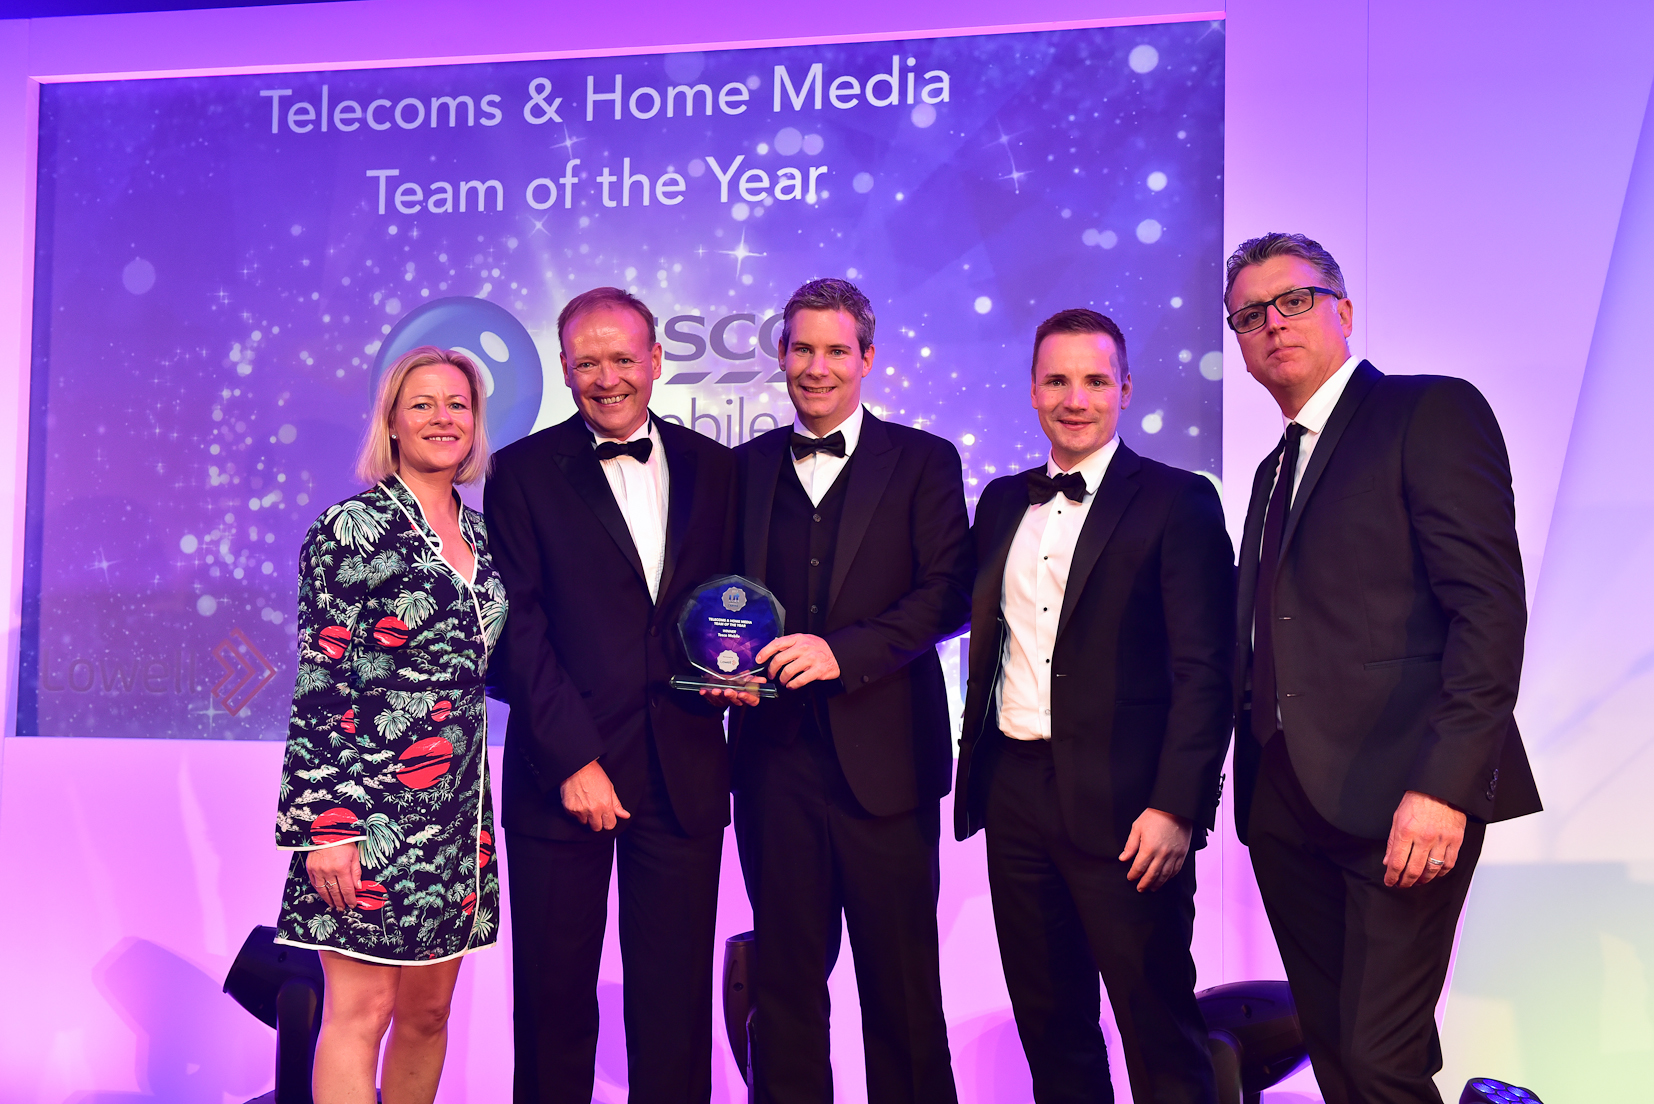 Winners U&TA 2017 - 7 Telecoms & Home Media Team of the Year